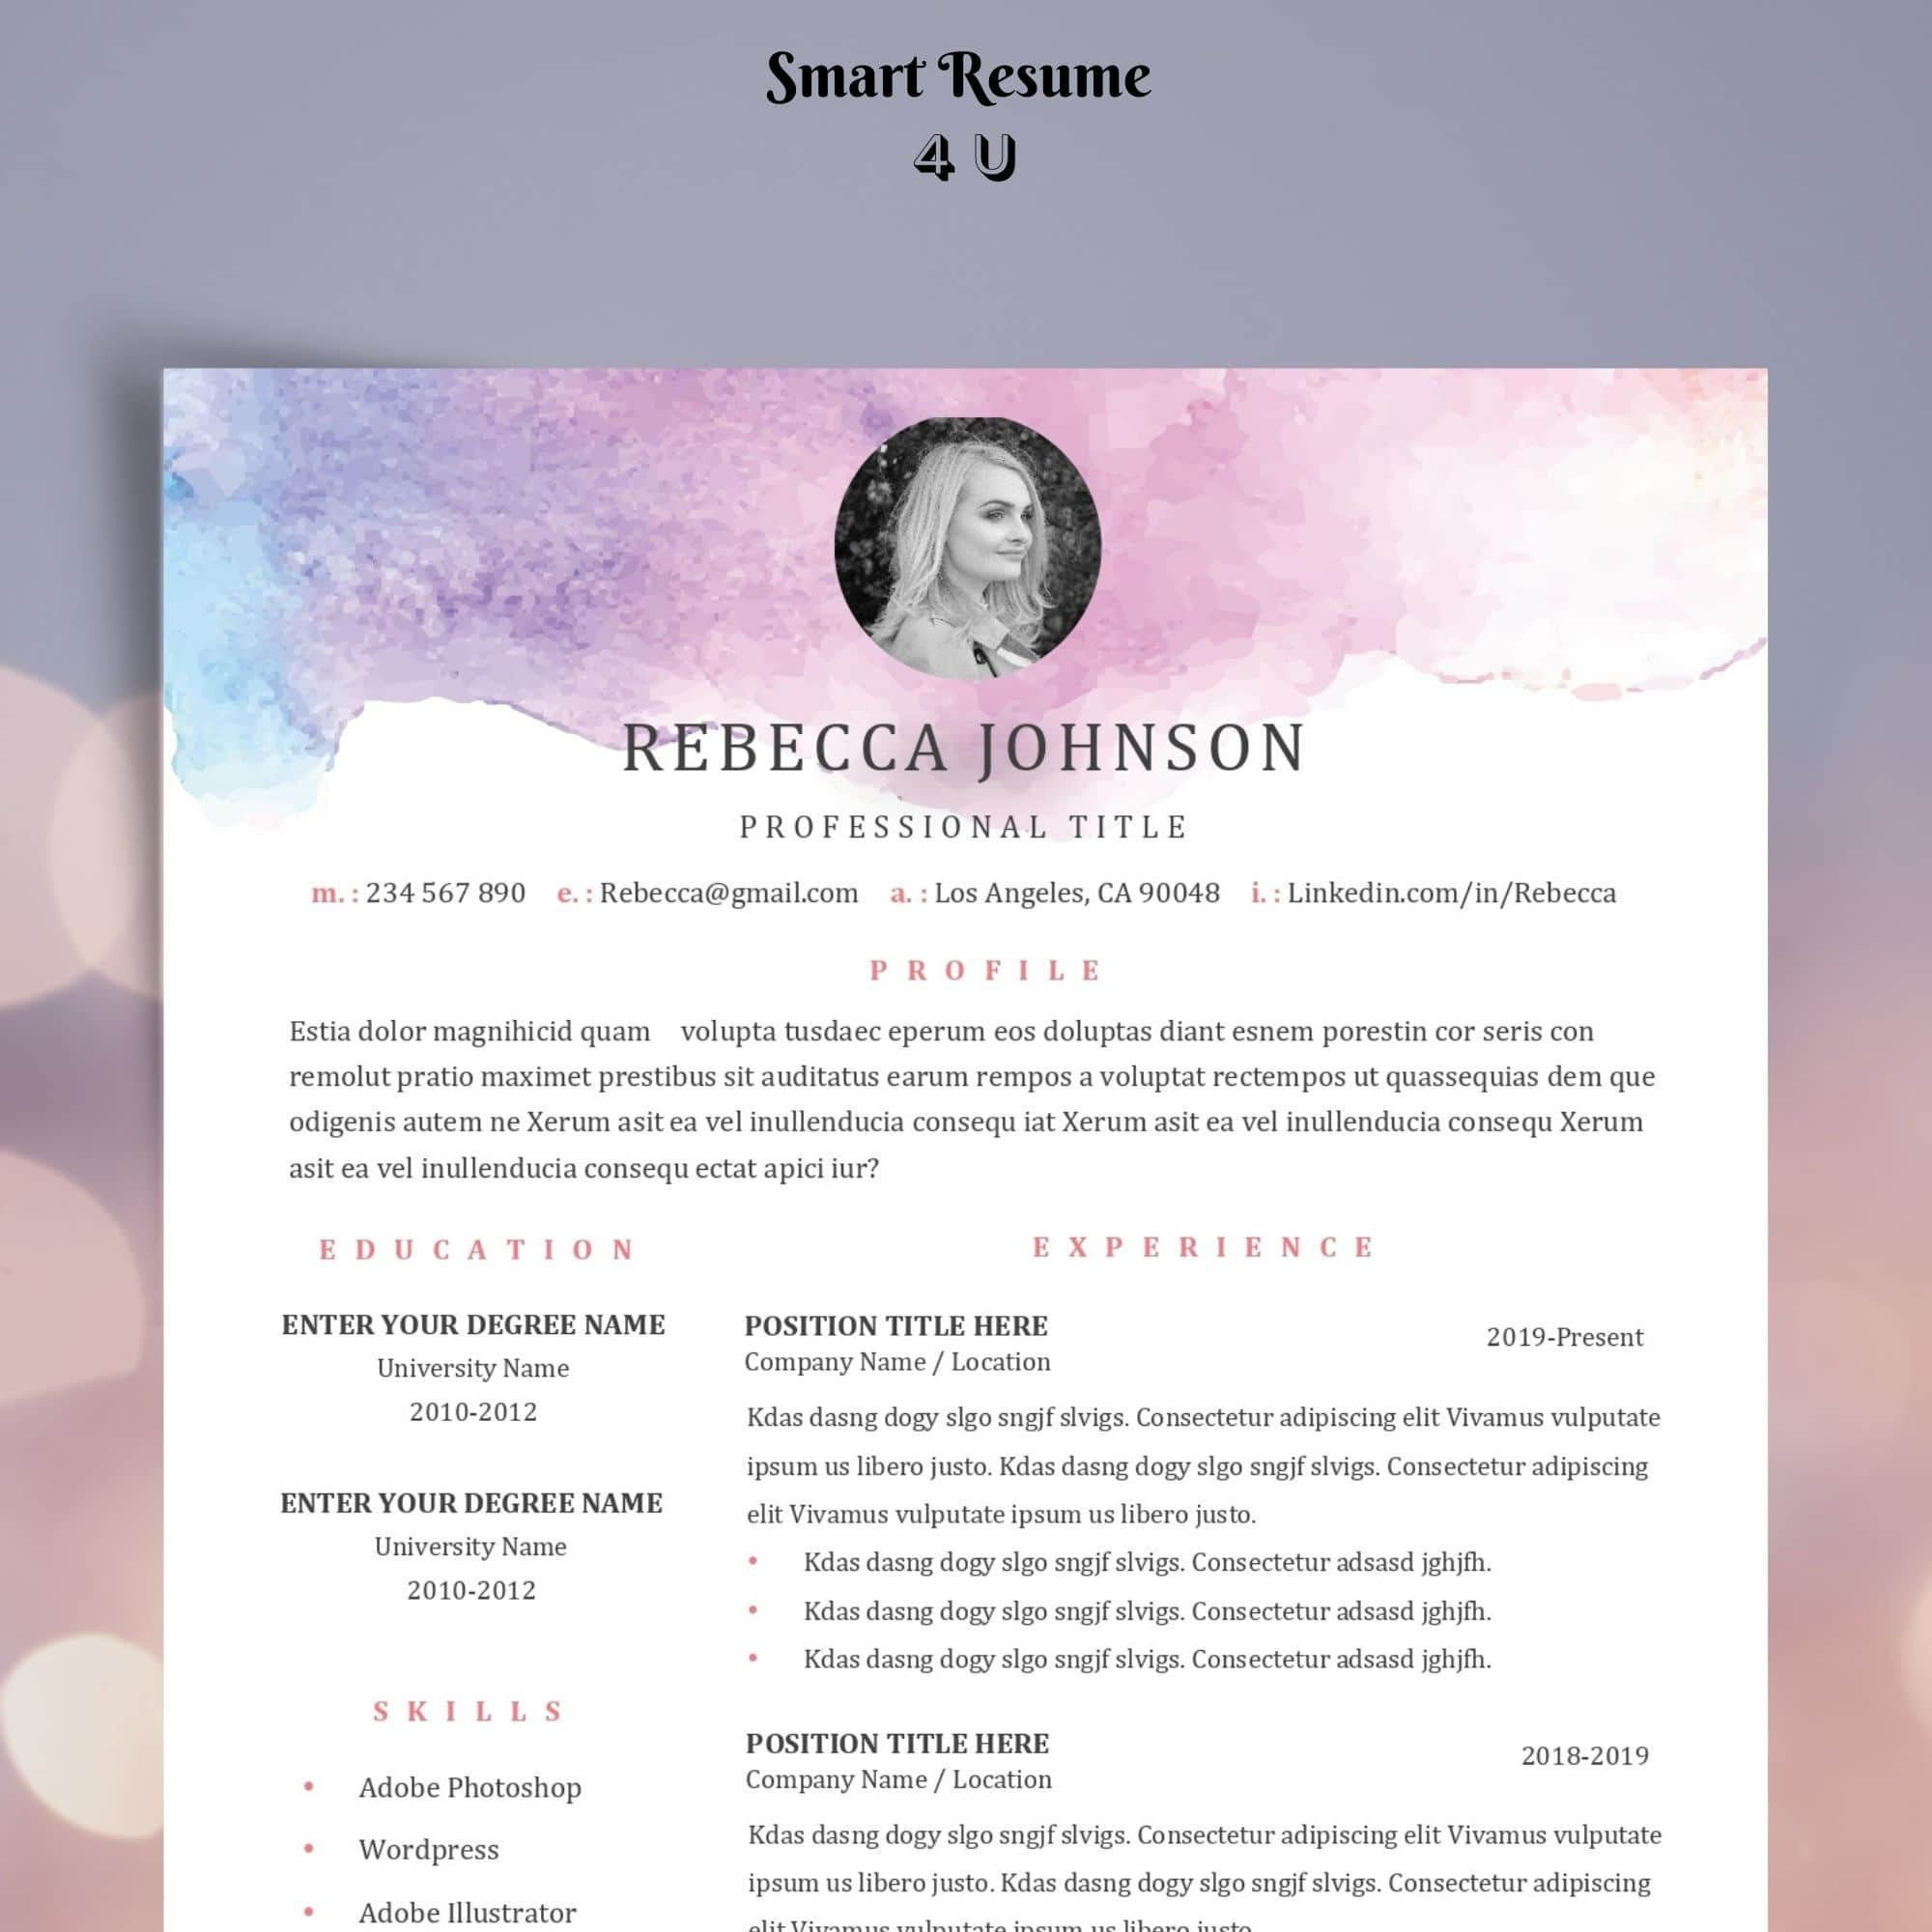 Feminine Resume Template Word Mac Creative Cv Template Photo Resume For Marketing Retail Artist Fashion Designer Stylist Dancer Creative Cv Template Resume Template Word Resume Template